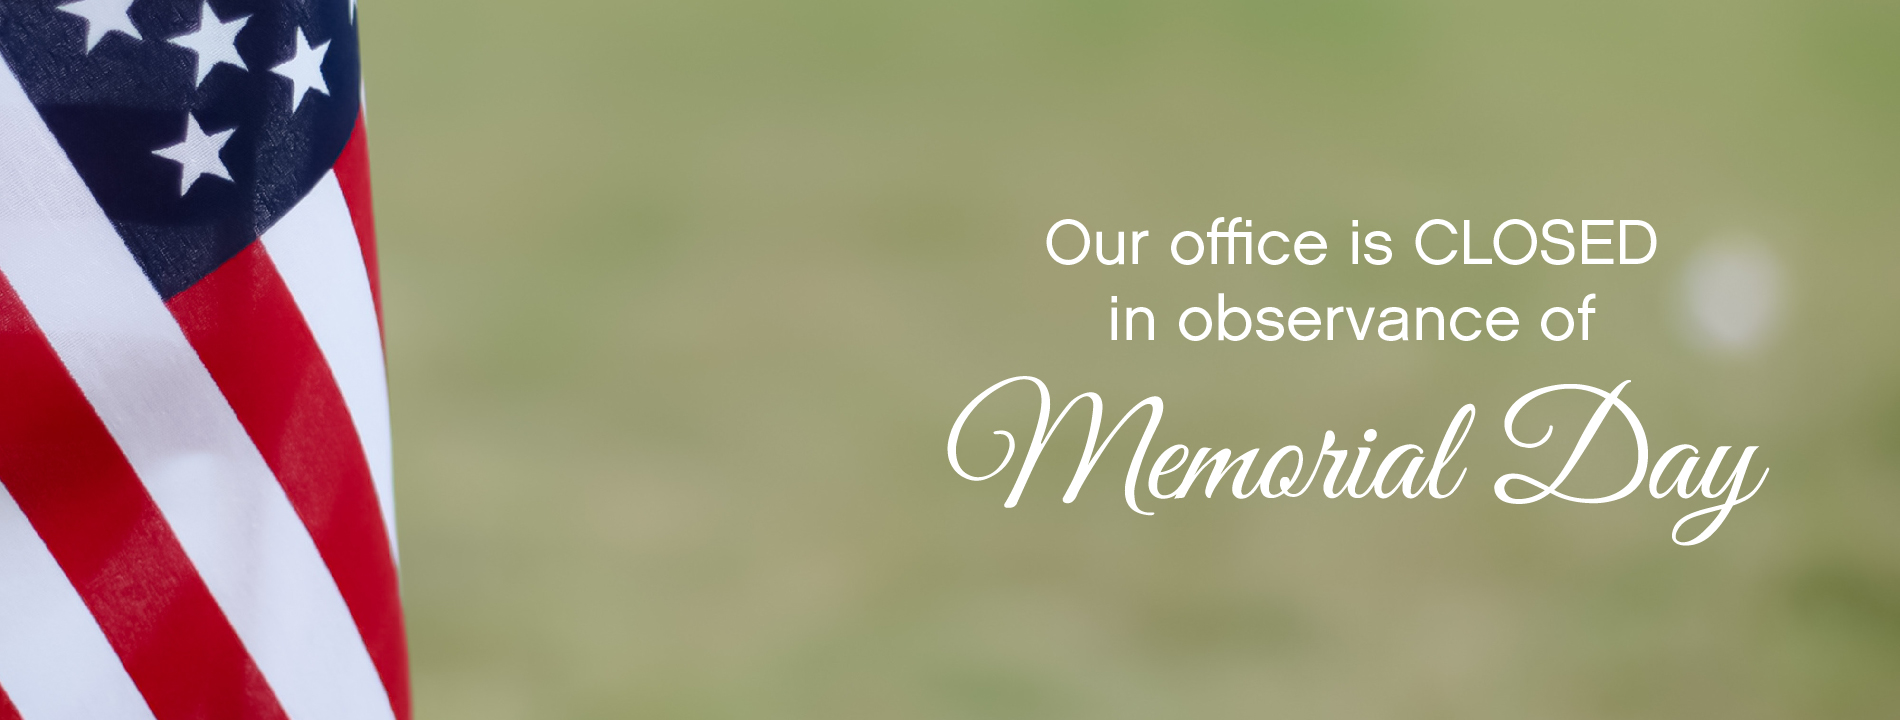 Our office is closed in observance of Memorial Day.